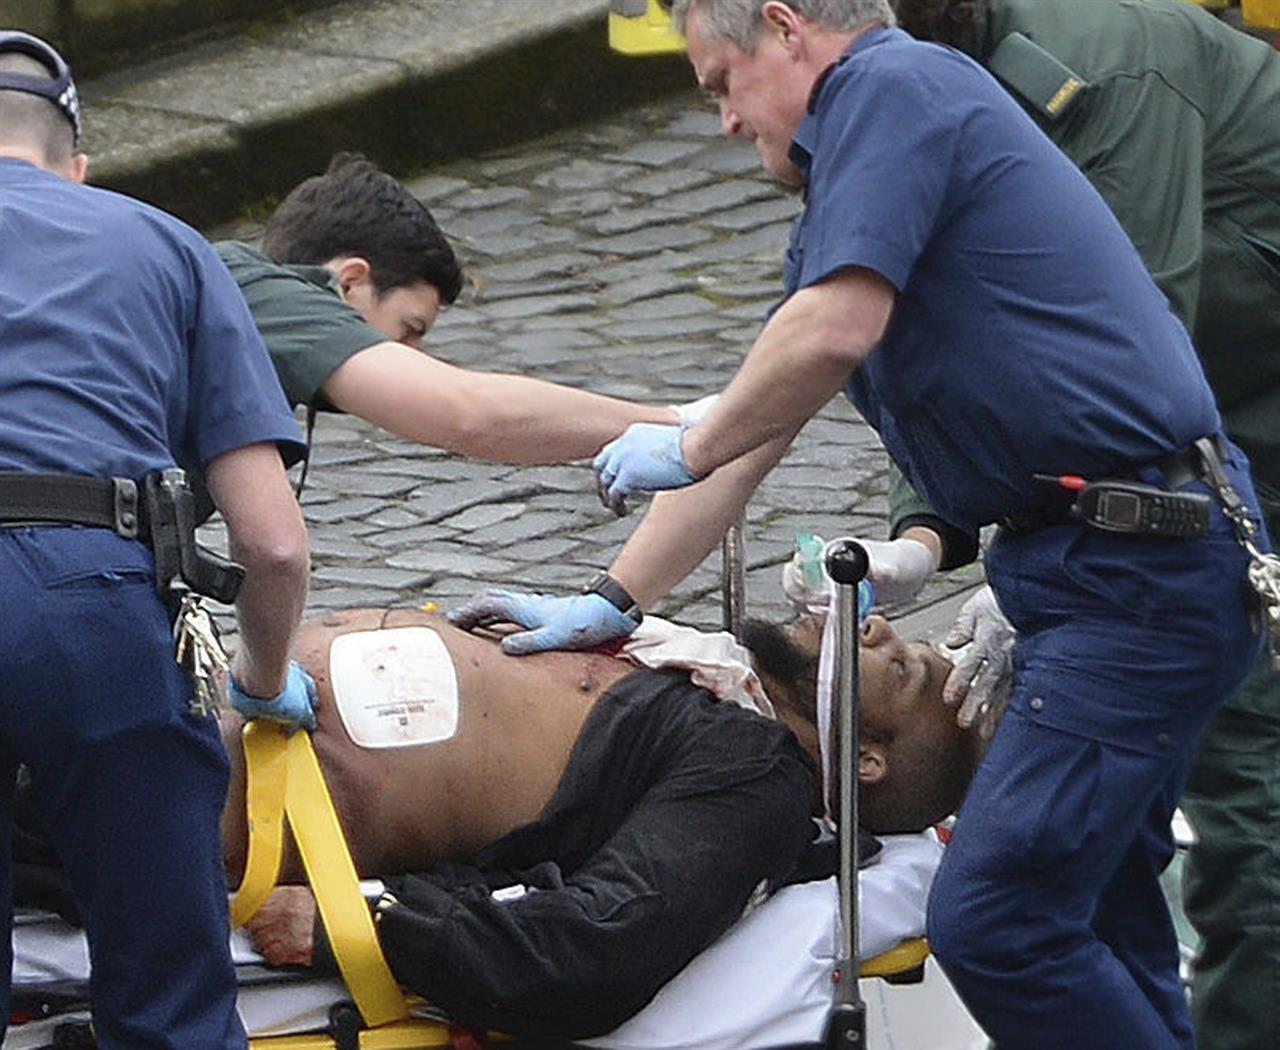 "An attacker is treated by emergency services outside the Houses of Parliament London, Wednesday, March 22, 2017. London police say they are treating a gun and knife incident at Britain's Parliament ""as a terrorist incident until we know otherwise."" The Metropolitan Police says in a statement that the incident is ongoing. It is urging people to stay away from the area. Officials say a man with a knife attacked a police officer at Parliament and was shot by officers. Nearby, witnesses say a vehicle struck several people on the Westminster Bridge."